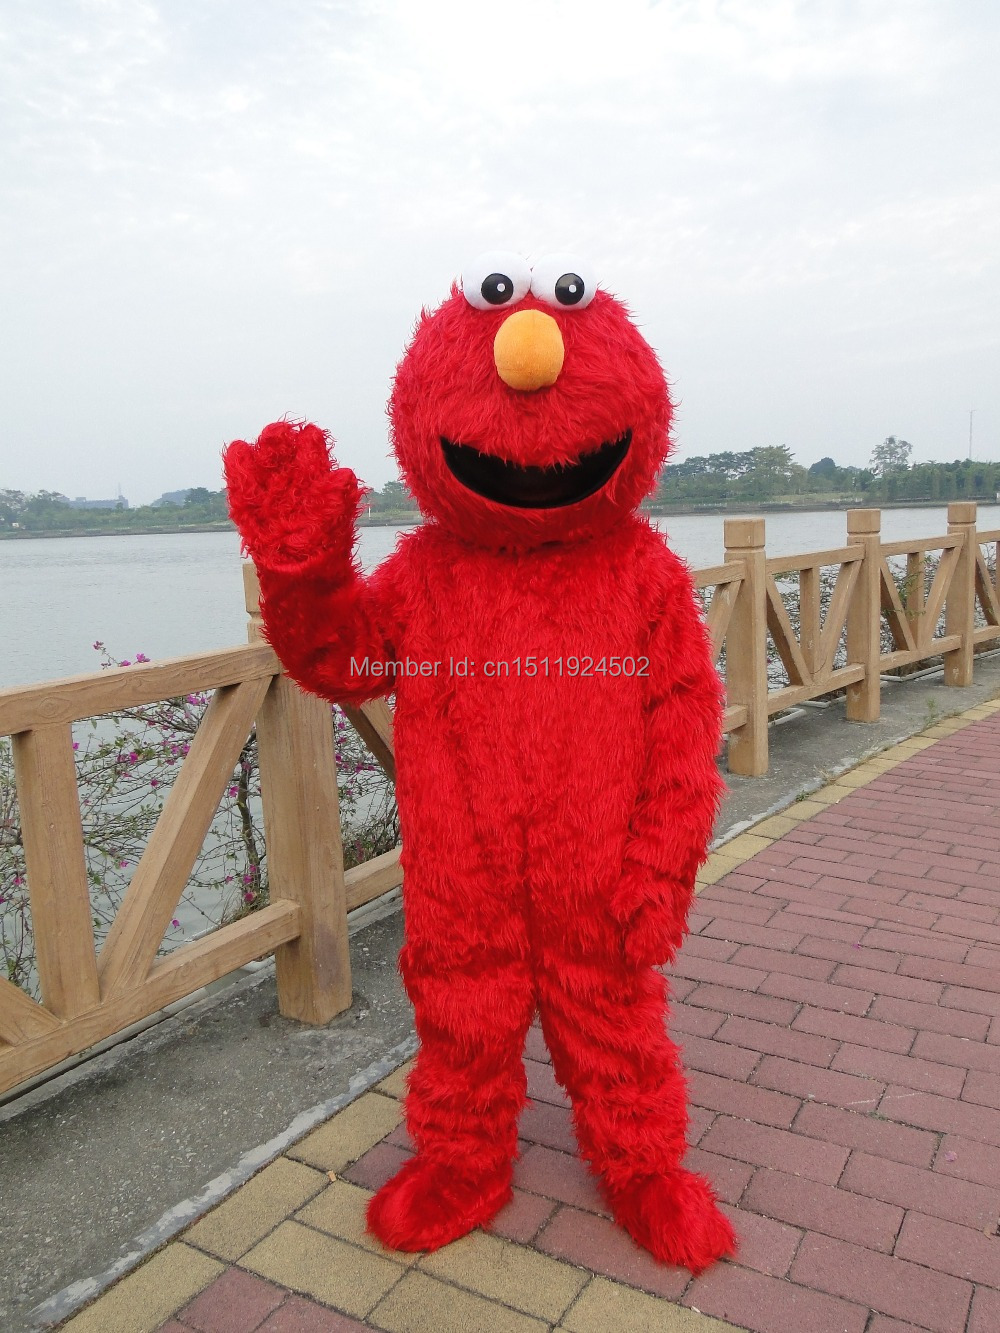 High quality Long Hair Elmo Mascot Costume Character Costume Cartoon Costume Costume Mascot